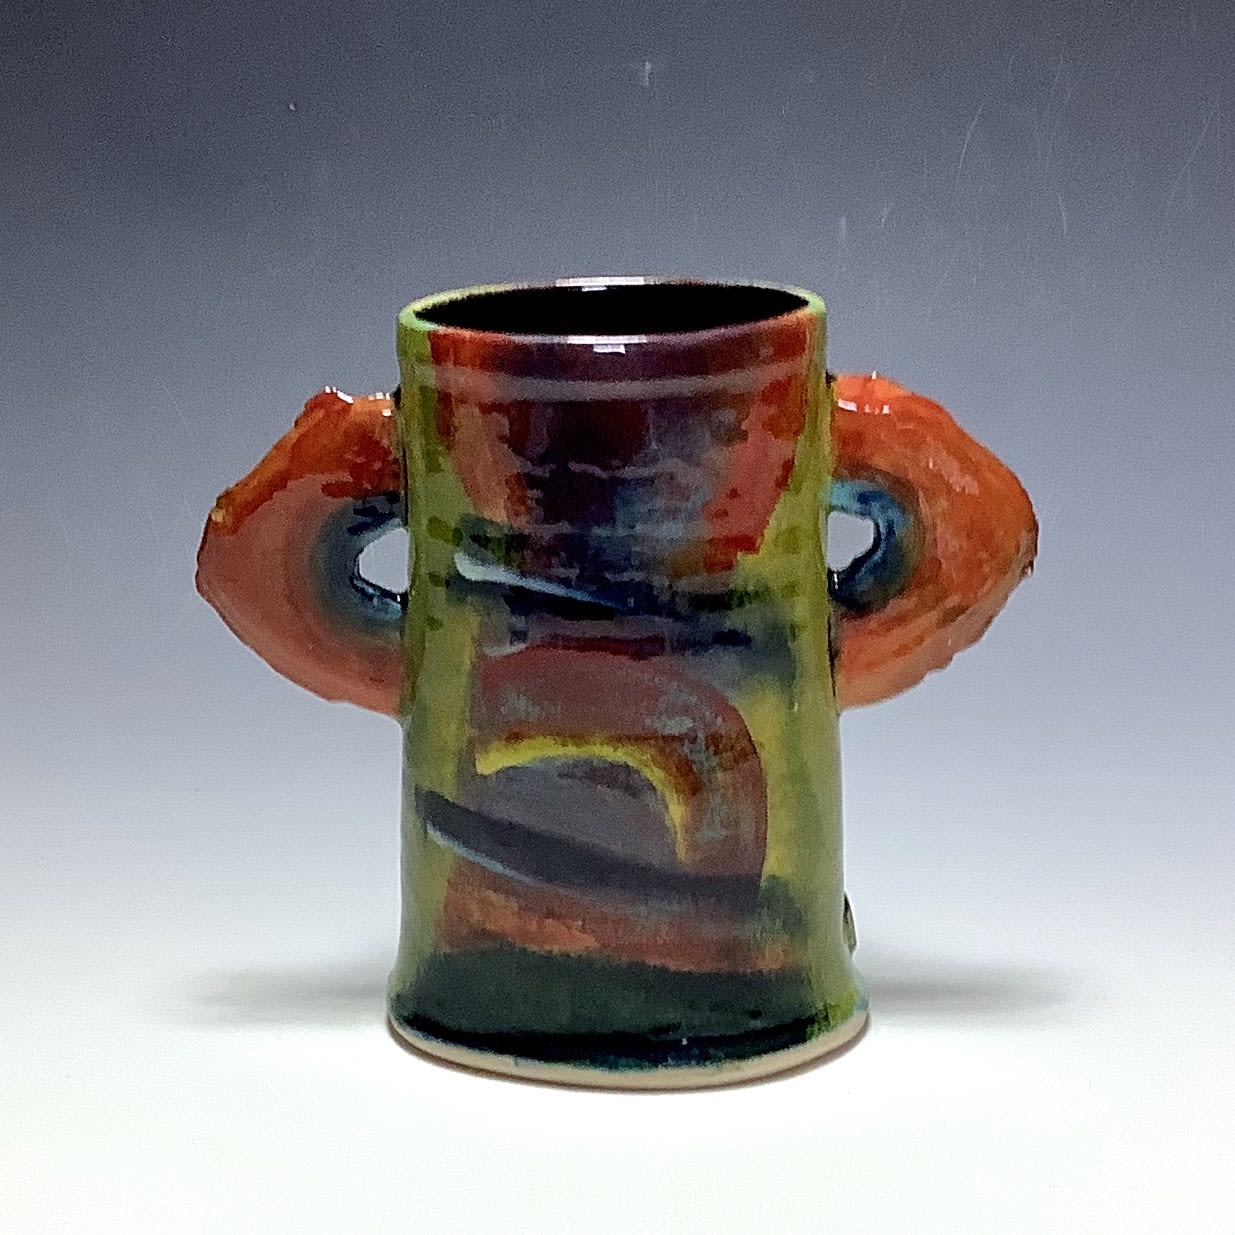 """<span class=""""link fancybox-details-link""""><a href=""""/artists/100-john-pollex/works/7853-john-pollex-winged-vase-2021/"""">View Detail Page</a></span><div class=""""artist""""><strong>John Pollex</strong></div> <div class=""""title""""><em>Winged Vase</em>, 2021</div> <div class=""""signed_and_dated"""">impressed with the artist's seal mark 'JP'</div> <div class=""""medium"""">white earthenware decorated with coloured slips</div> <div class=""""dimensions"""">height. 17 cm x diameter. 12 cm</div><div class=""""price"""">£176.00</div><div class=""""copyright_line"""">Own Art: £17.60 x 10 Months, 0% APR</div>"""